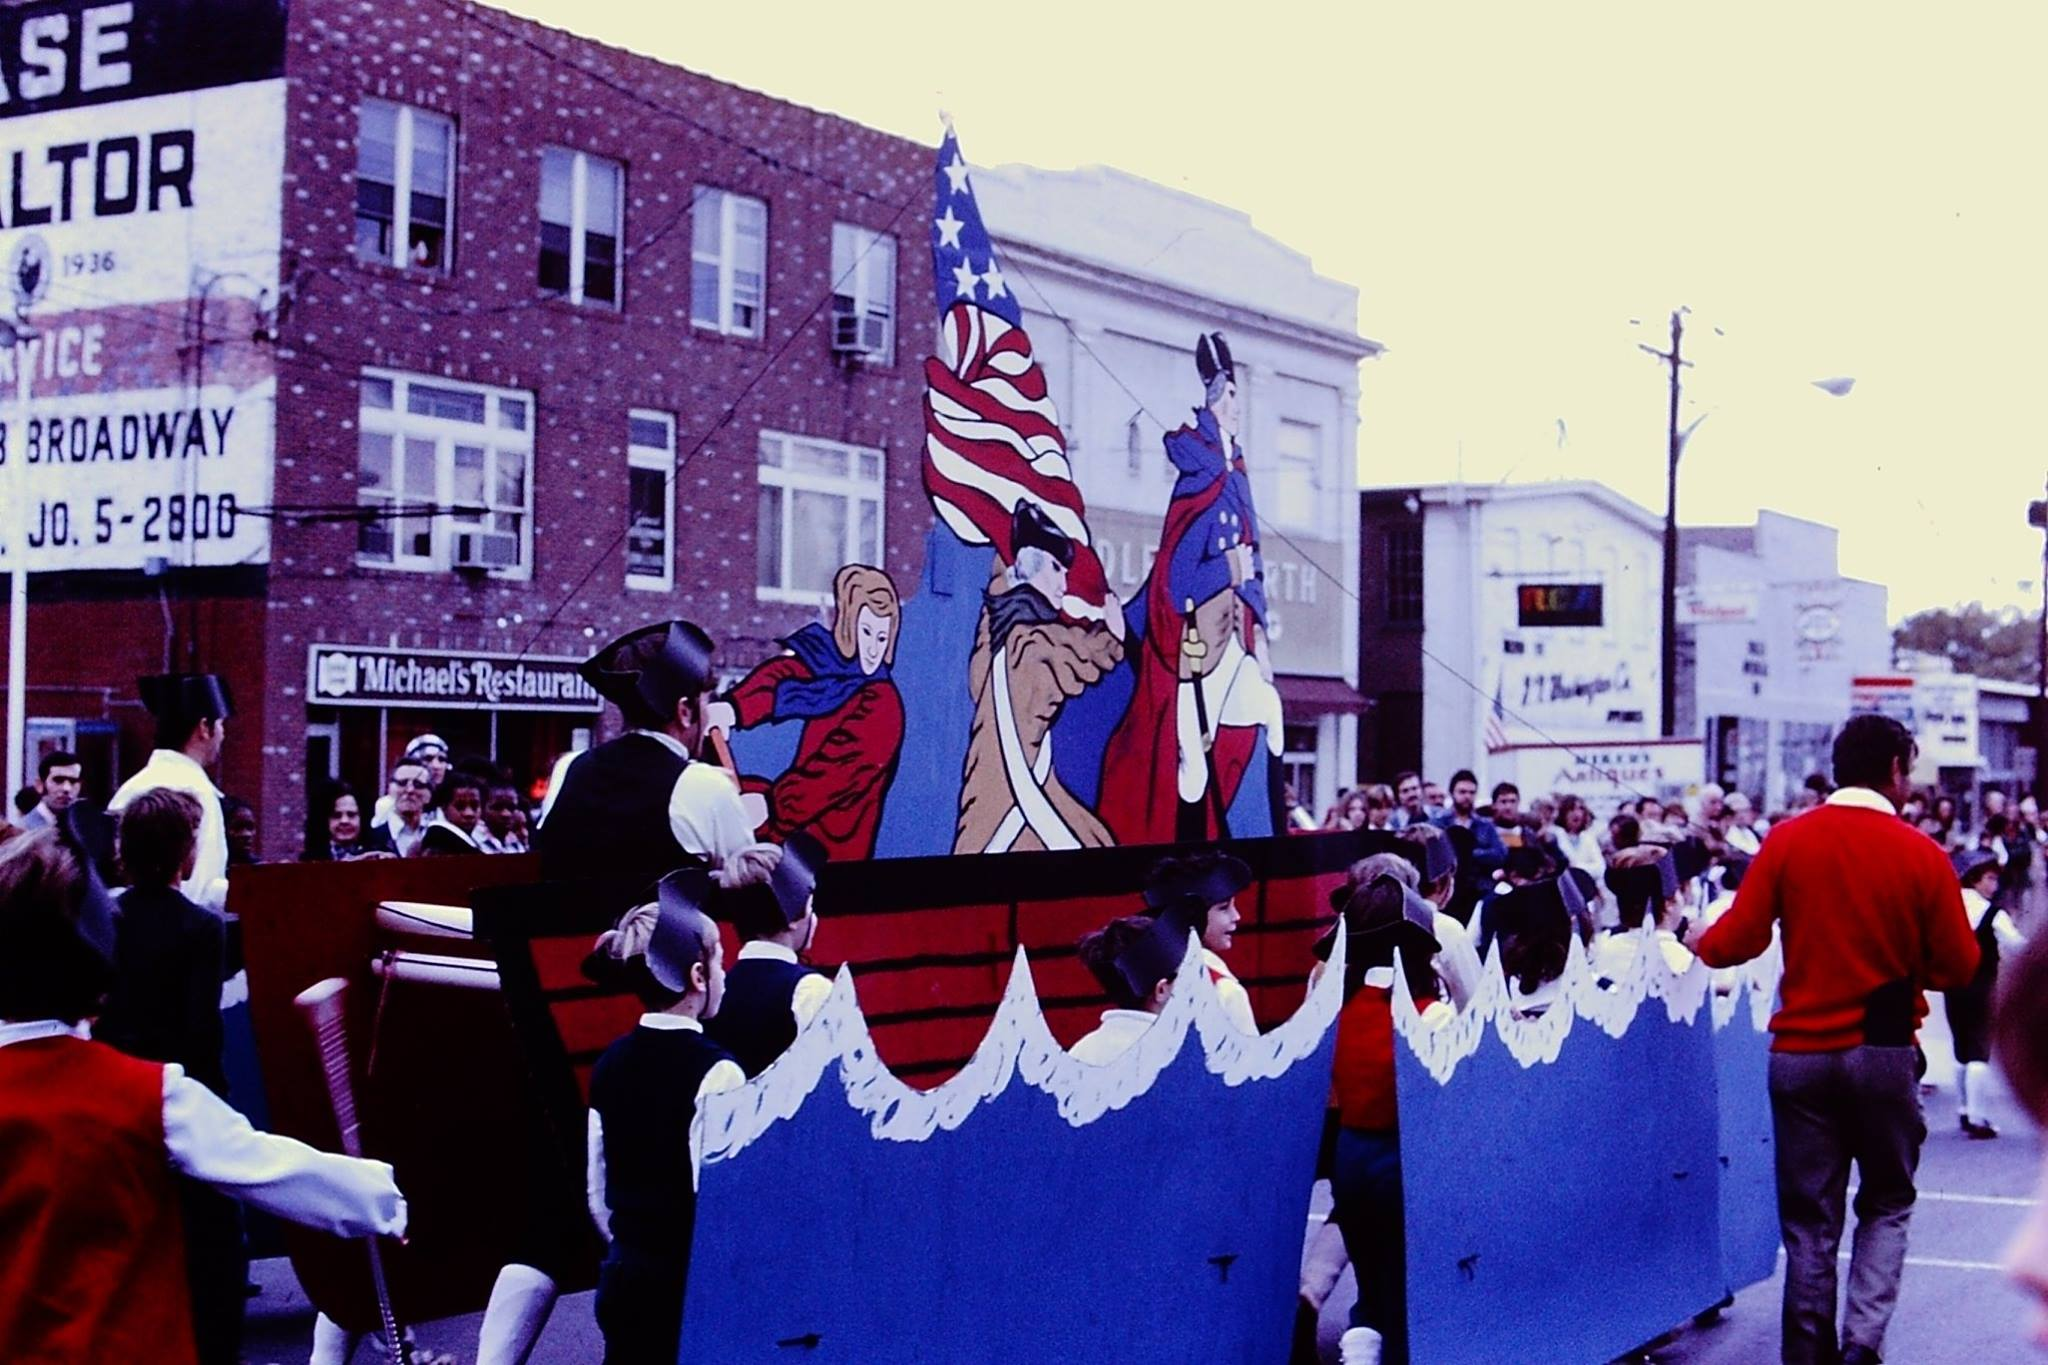 A town celebrates Washington Crossing the Potomac in a parade down the main street of Newburgh, New York, 1975